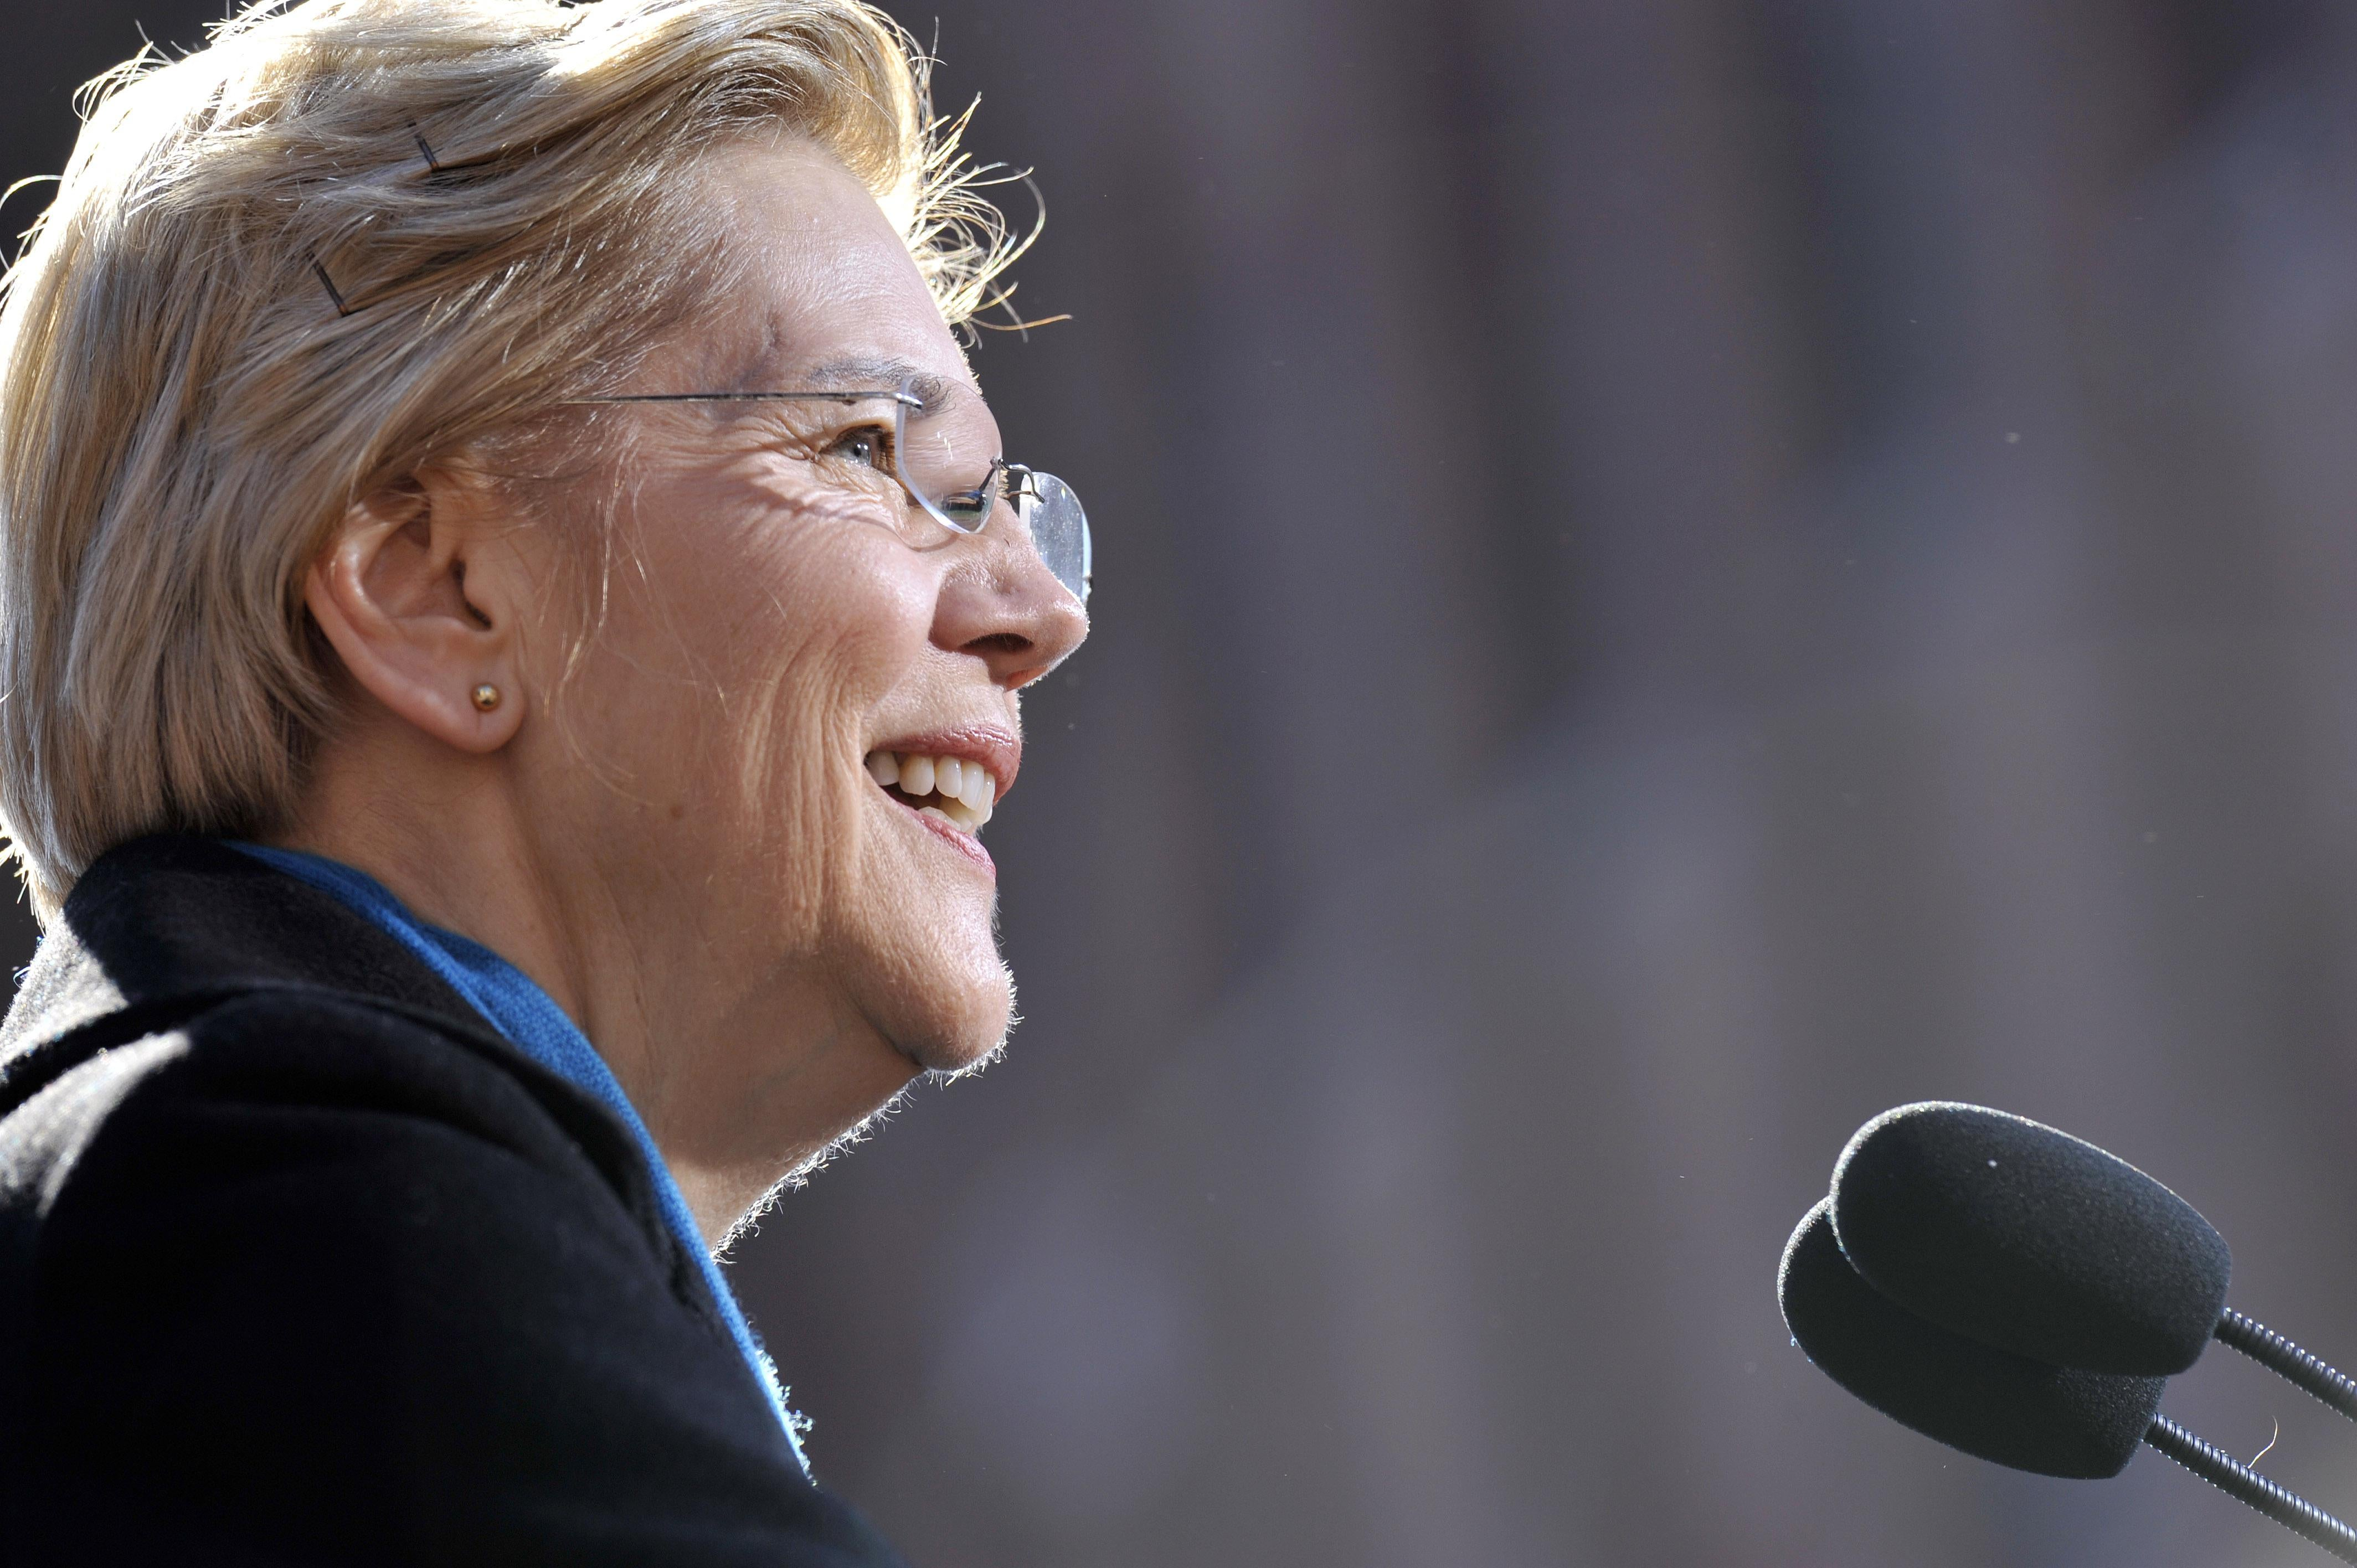 Senator Elizabeth Warren announces her candidacy for president at the Everett Mills in Lawrence, MA on February 9, 2019.